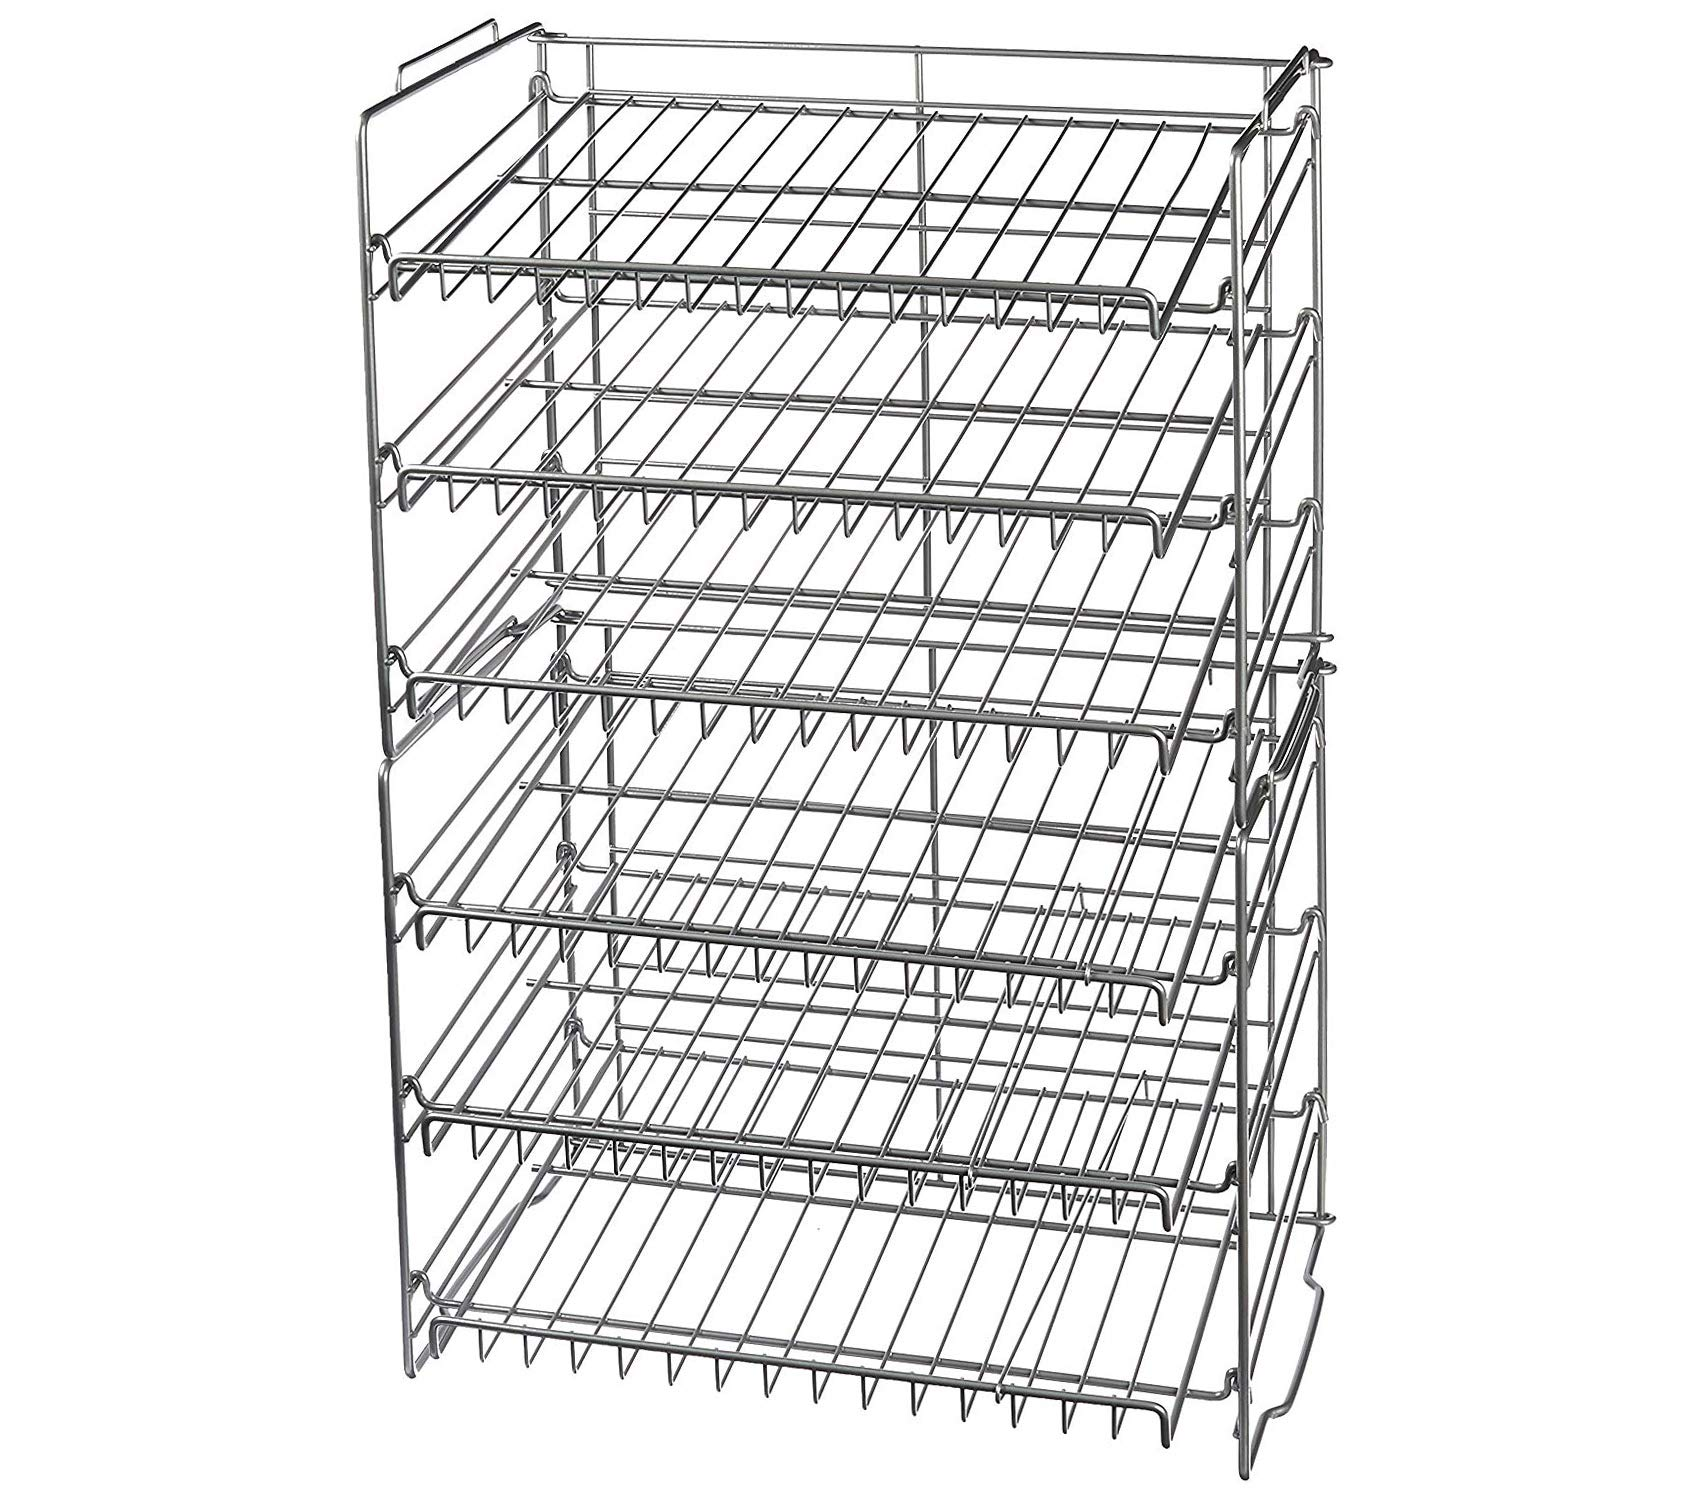 Аtlаntic Premium Gravity-Fed Compact Double Canrack Kitchen Organizer Durable Steel Construction Stackable or Side-by-Side in Silver Storage by Аtlаntic